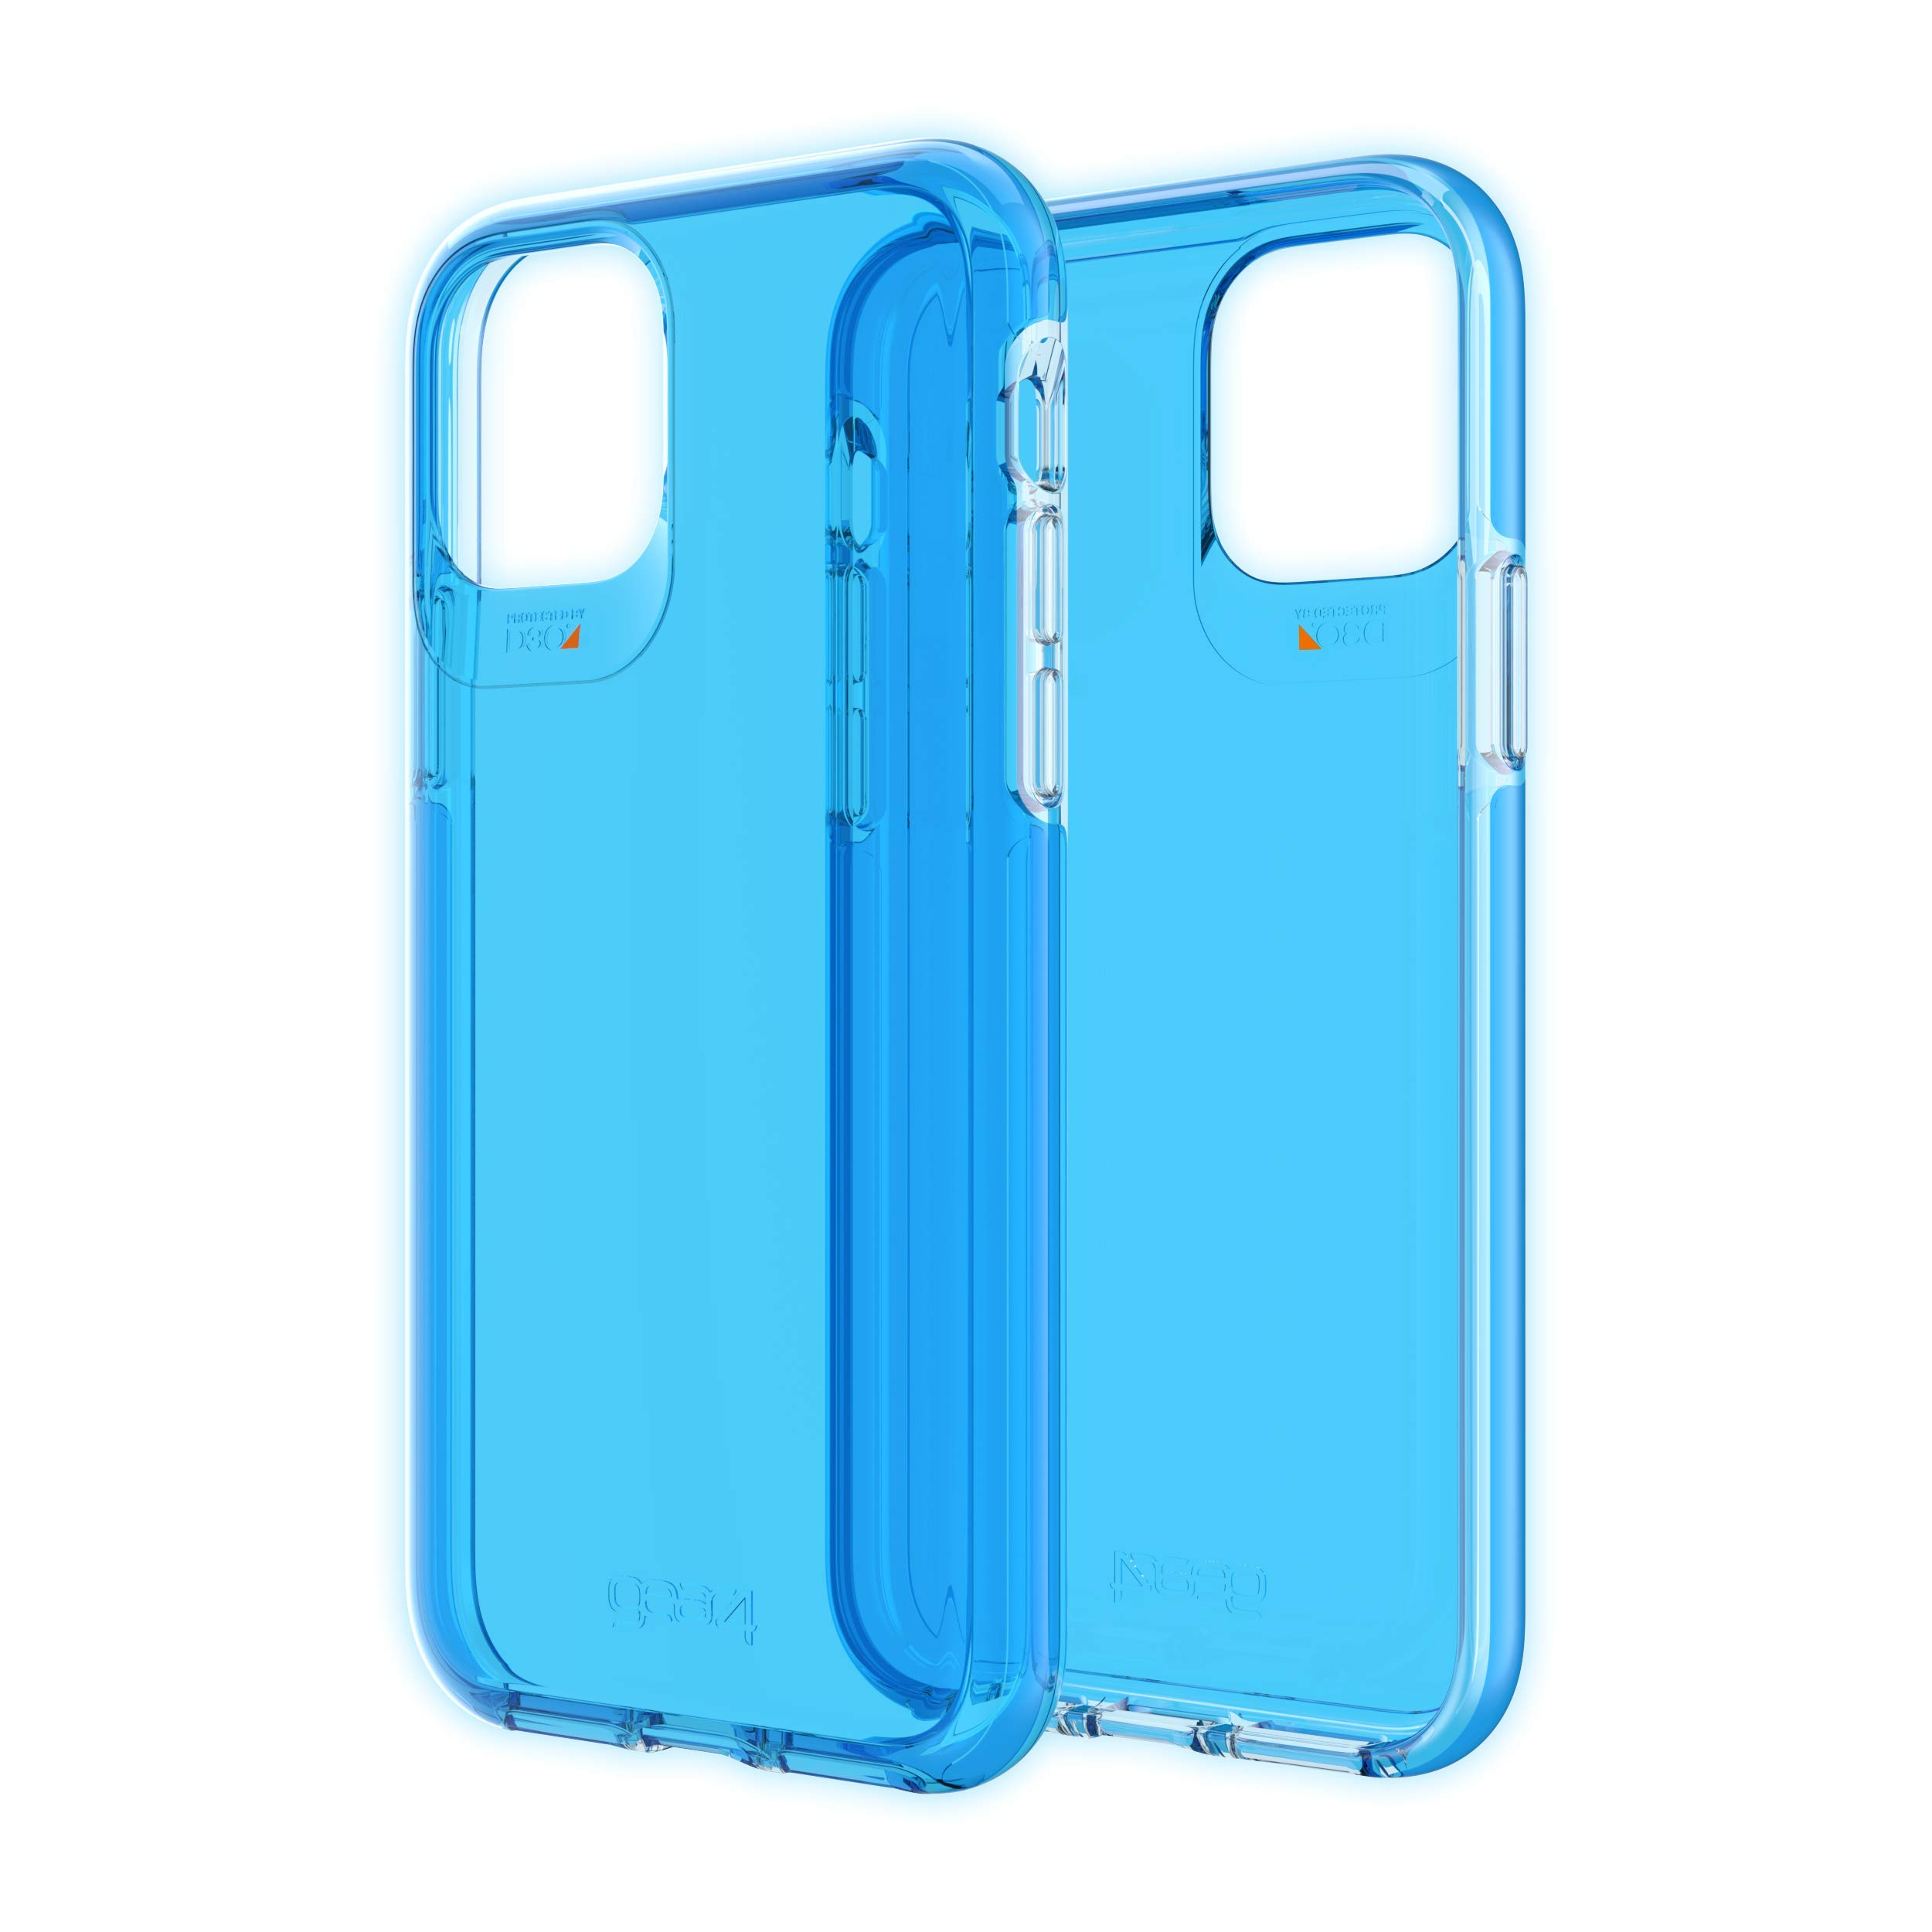 GEAR4 Crystal Palace Neon Compatible with iPhone 11 Pro Case, Advanced Impact Protection with Integrated D3O Technology, Anti-Yellowing, Phone Cover – Neon Blue